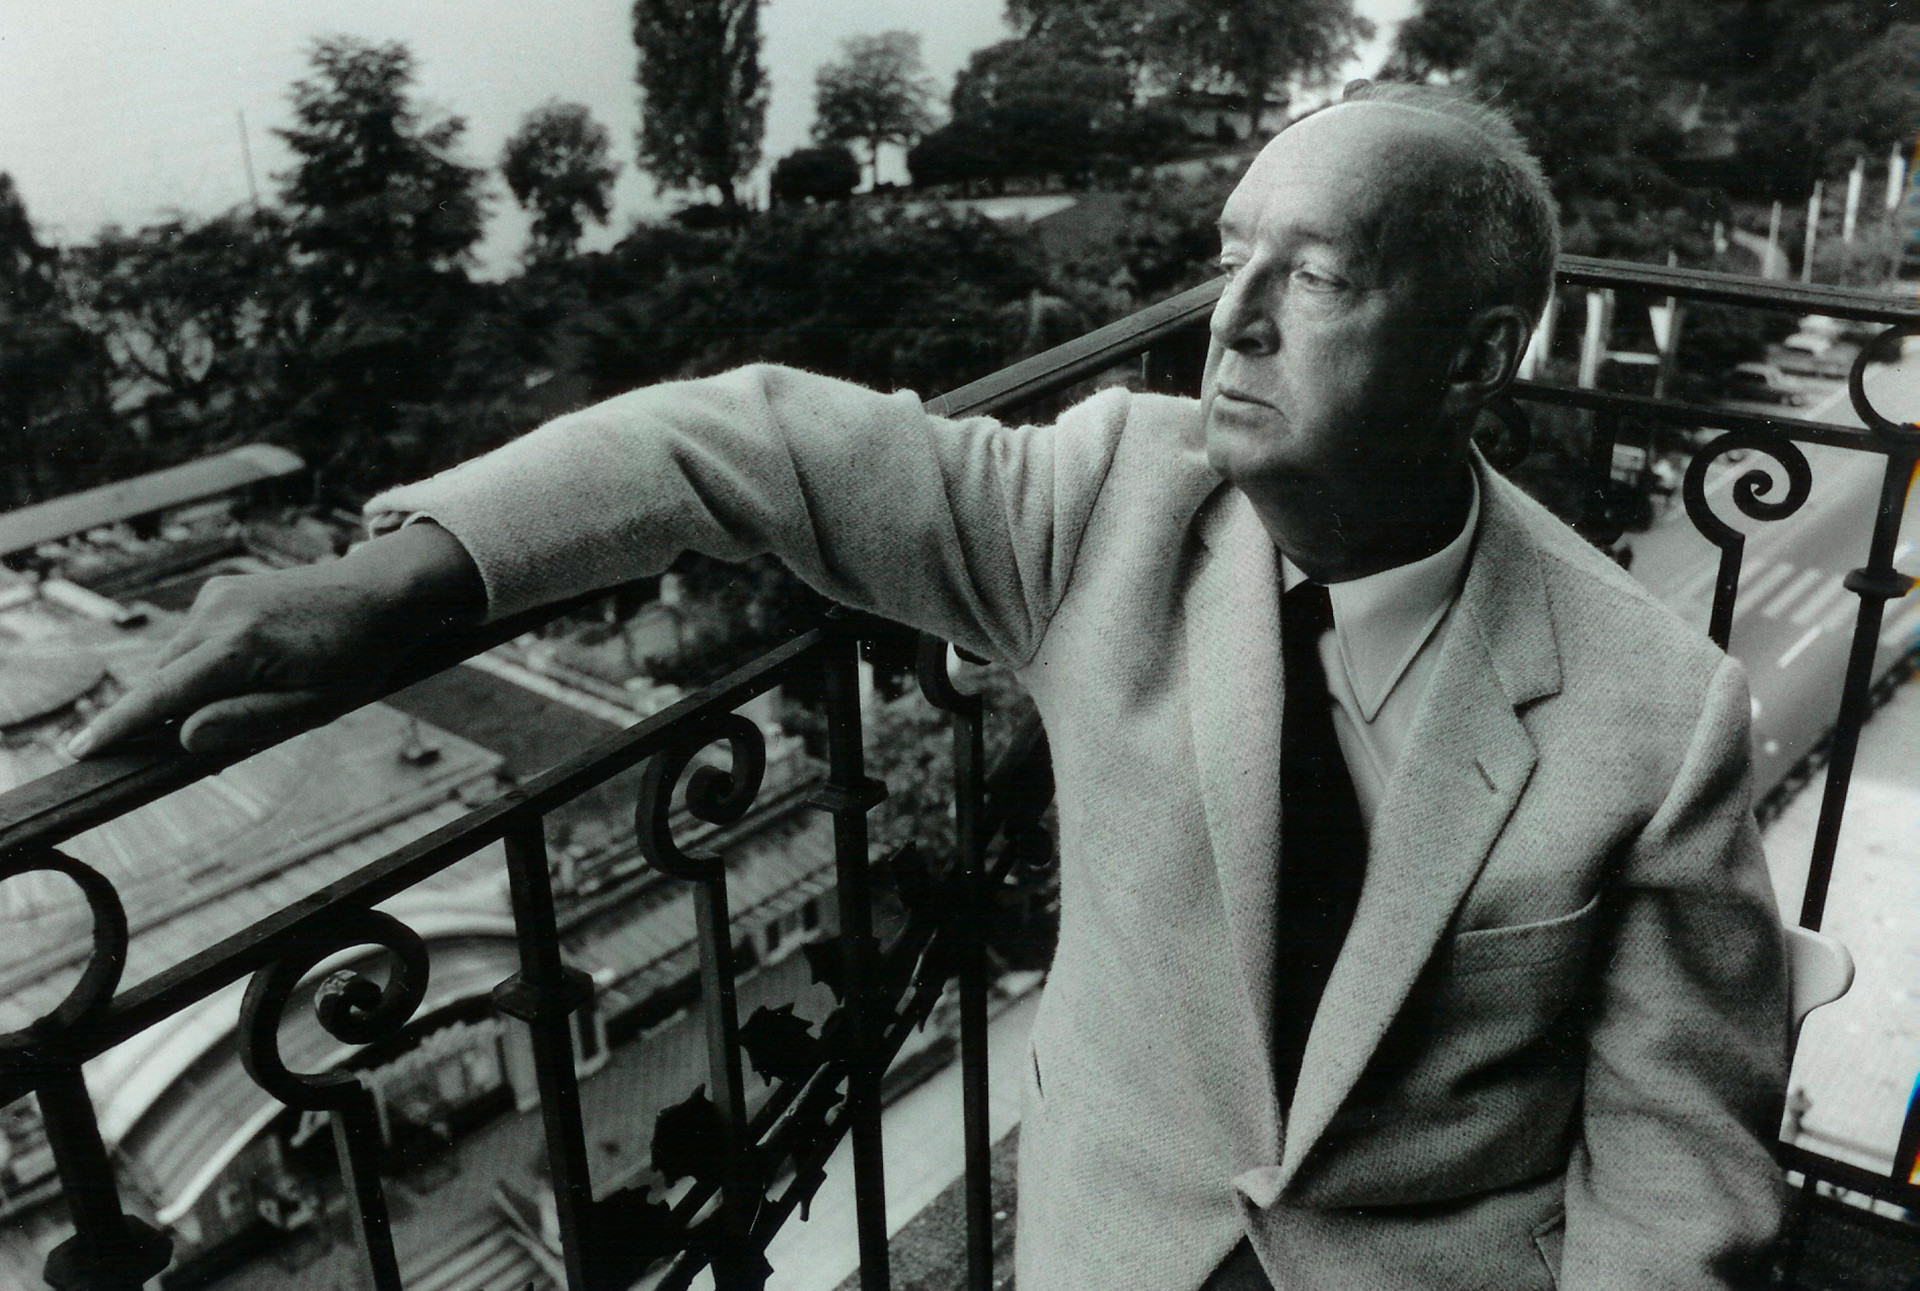 Vladimir Nabokov in Switzerland, 1965